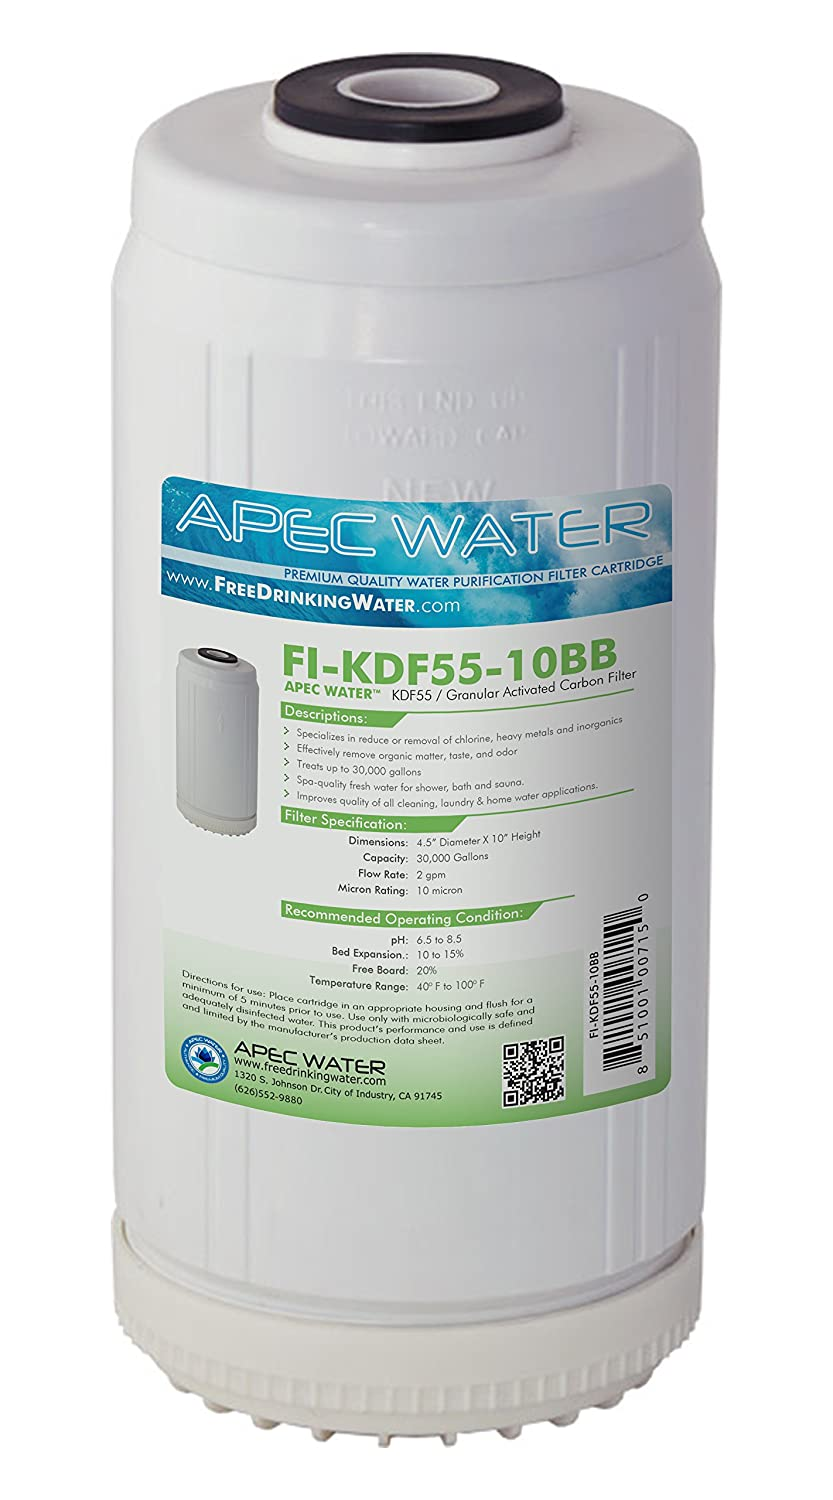 APEC Water Systems FI-KDF55-10BB 10 US Made Whole House Replacement Water Filter Chlorine Heavy Metal and Bacteria Removal